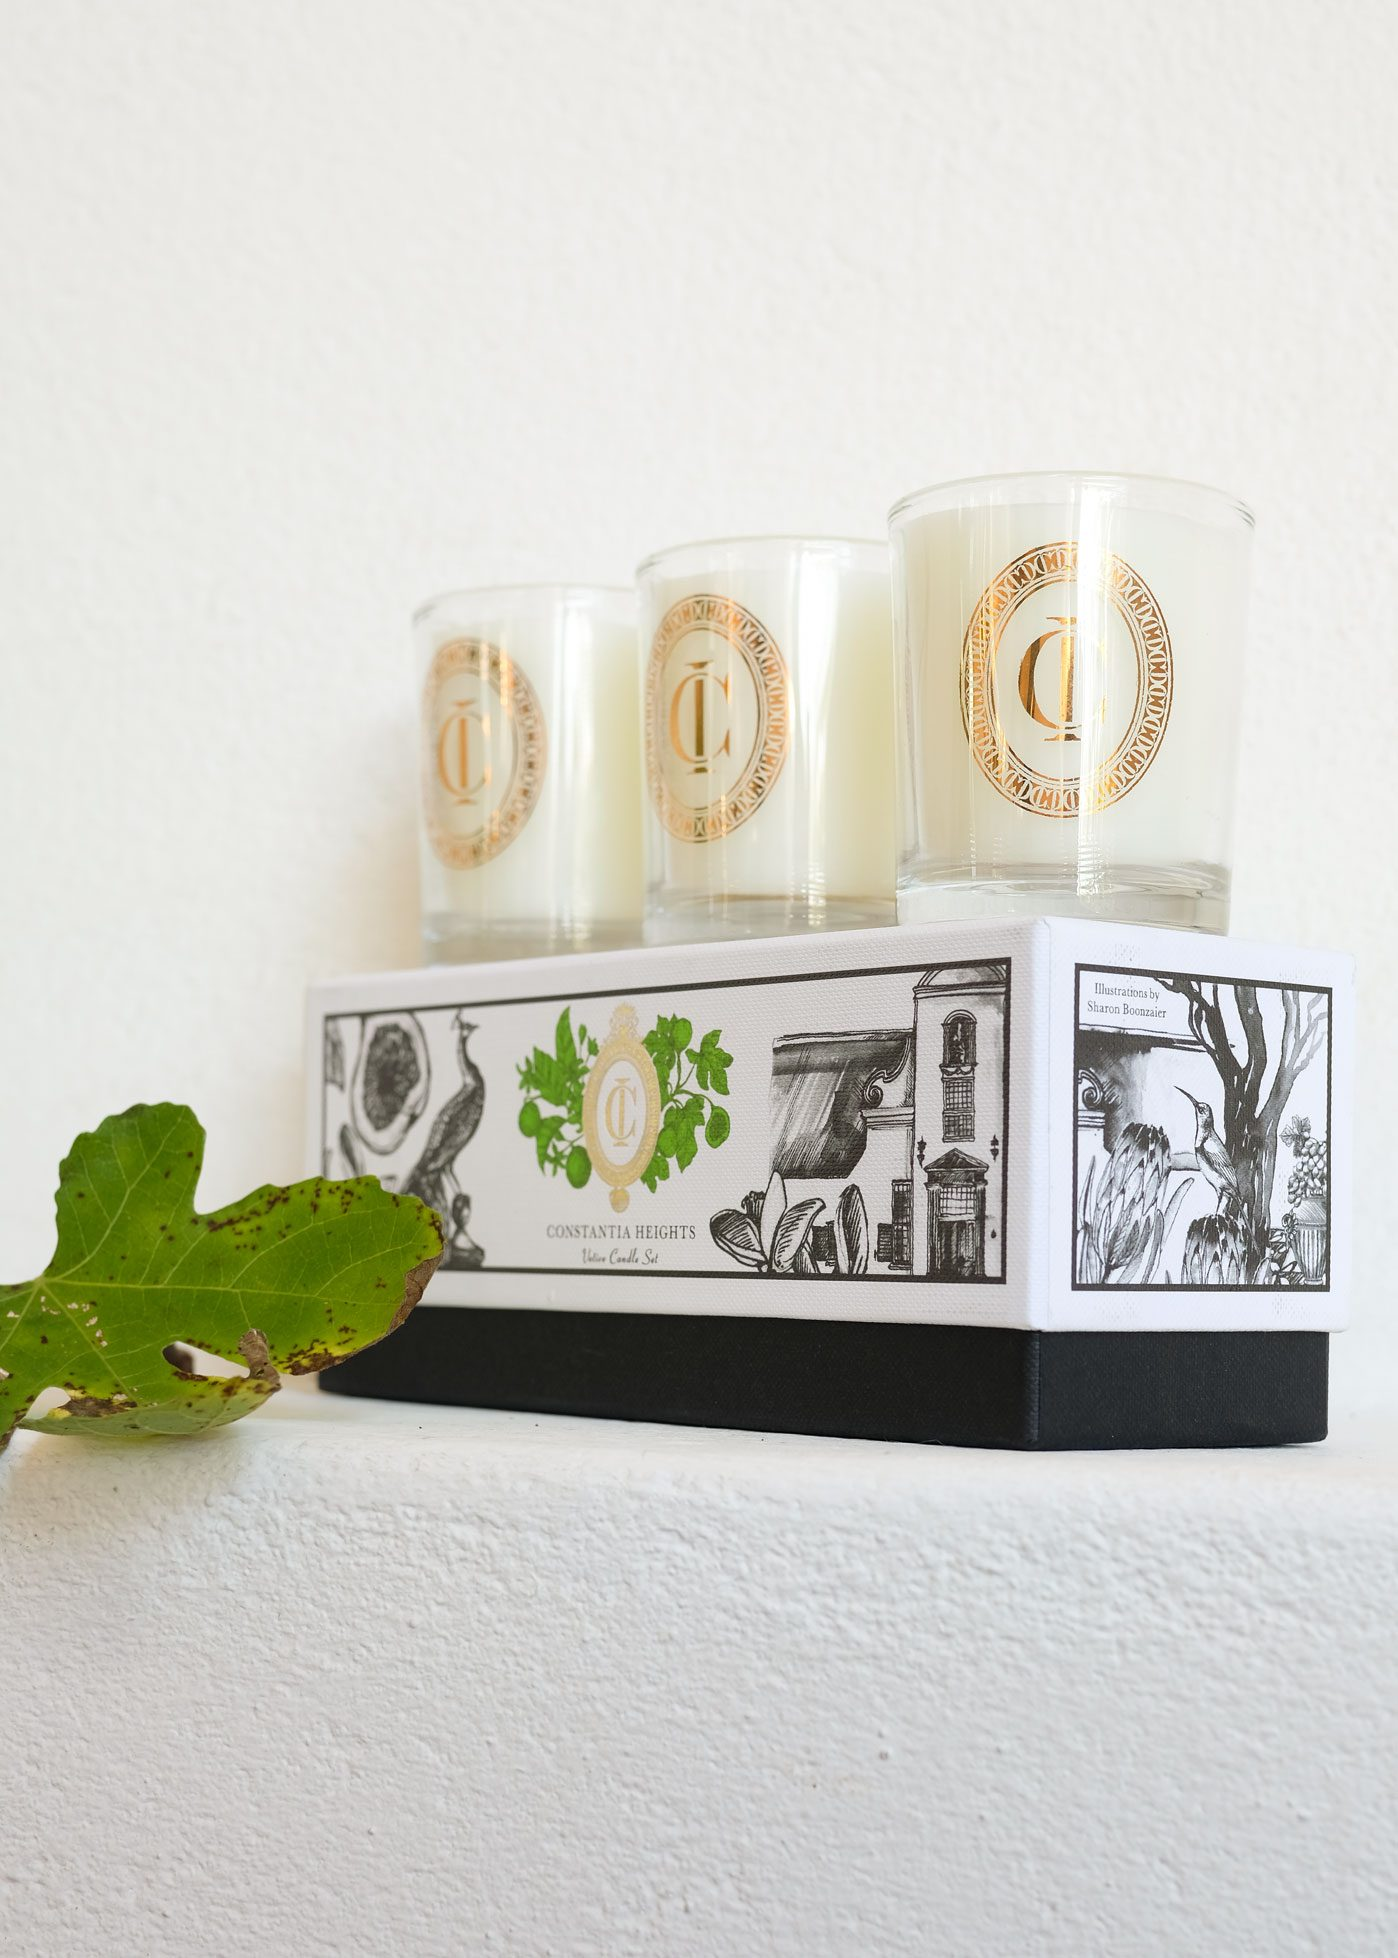 Constantia Heights votive set